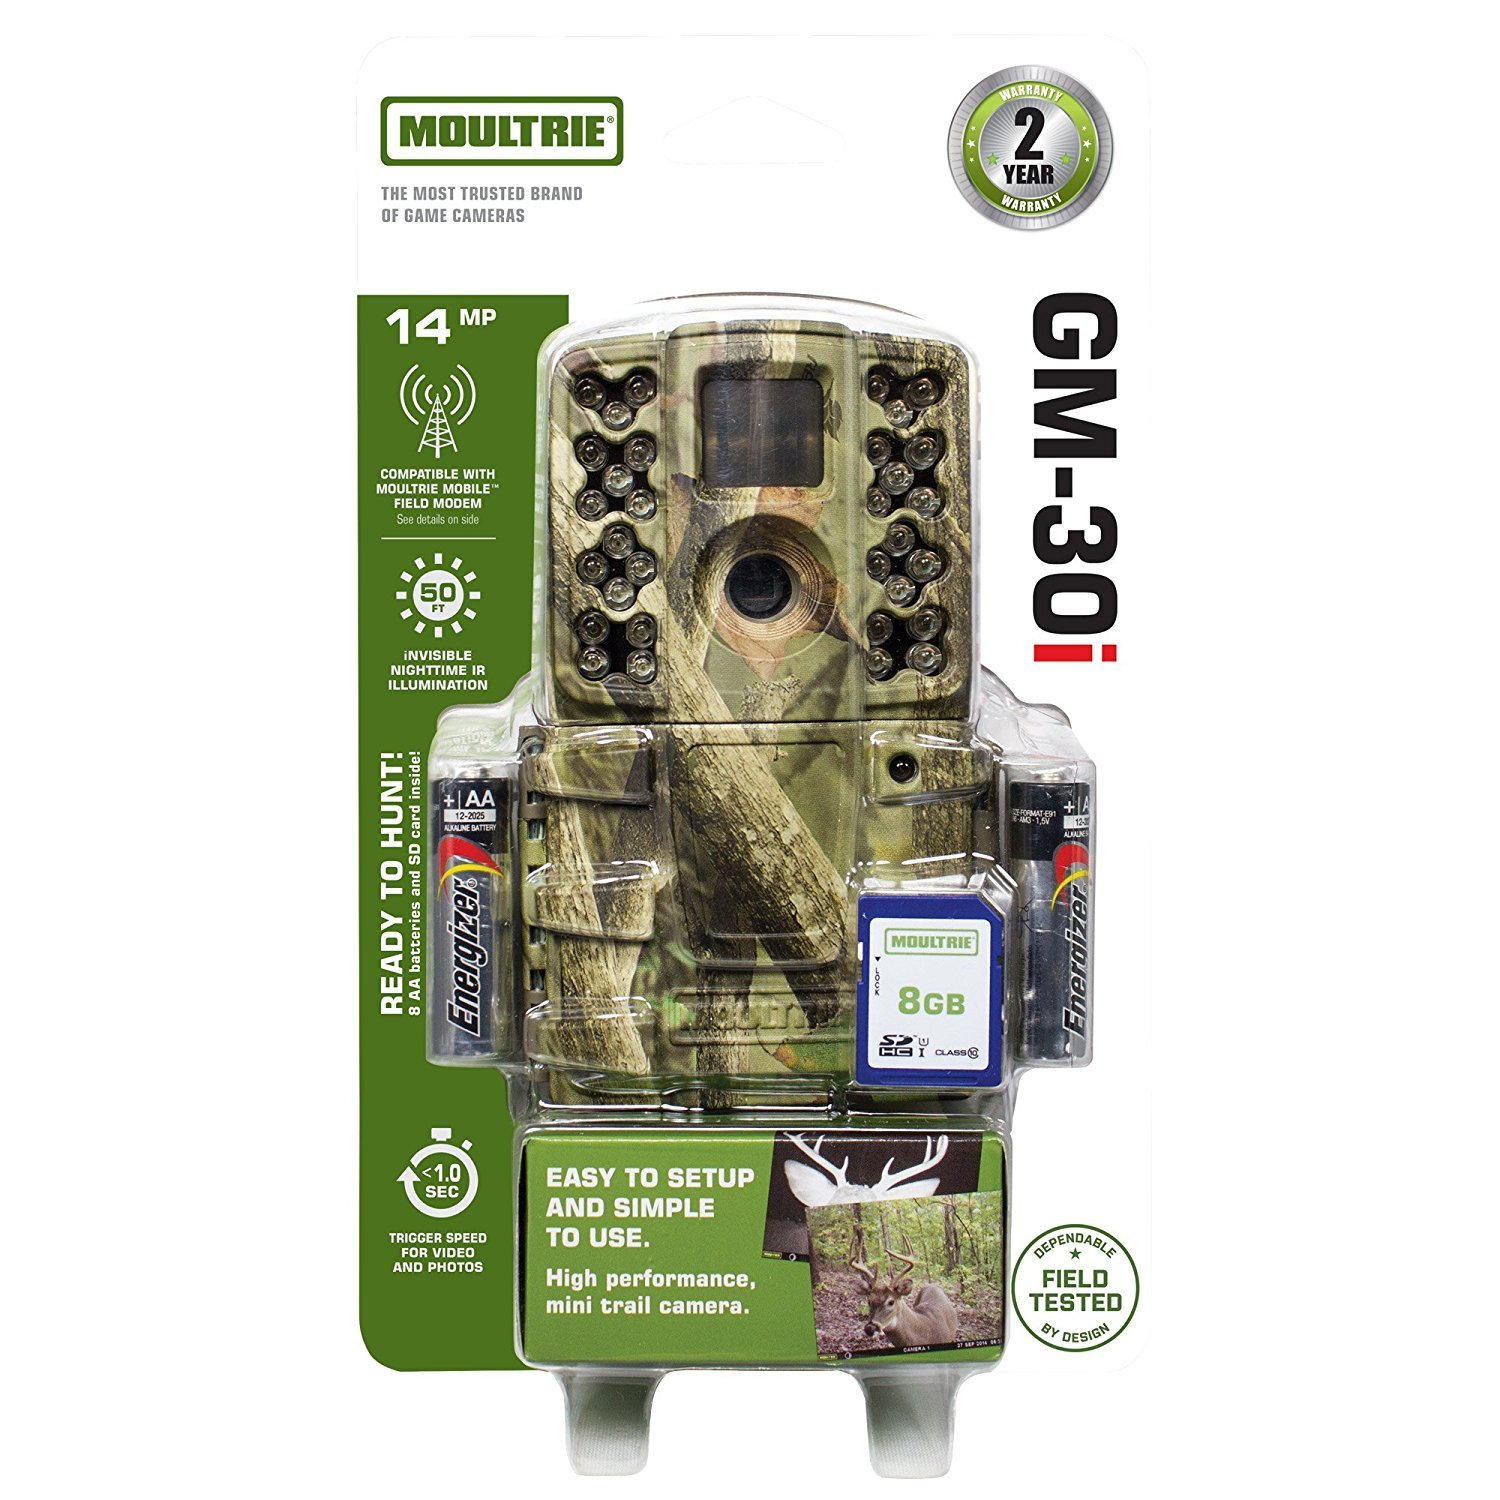 Moultrie A-30i 14 MP Infrared Game Trail Hunting Camera GM-30i by Moultrie (Image #1)